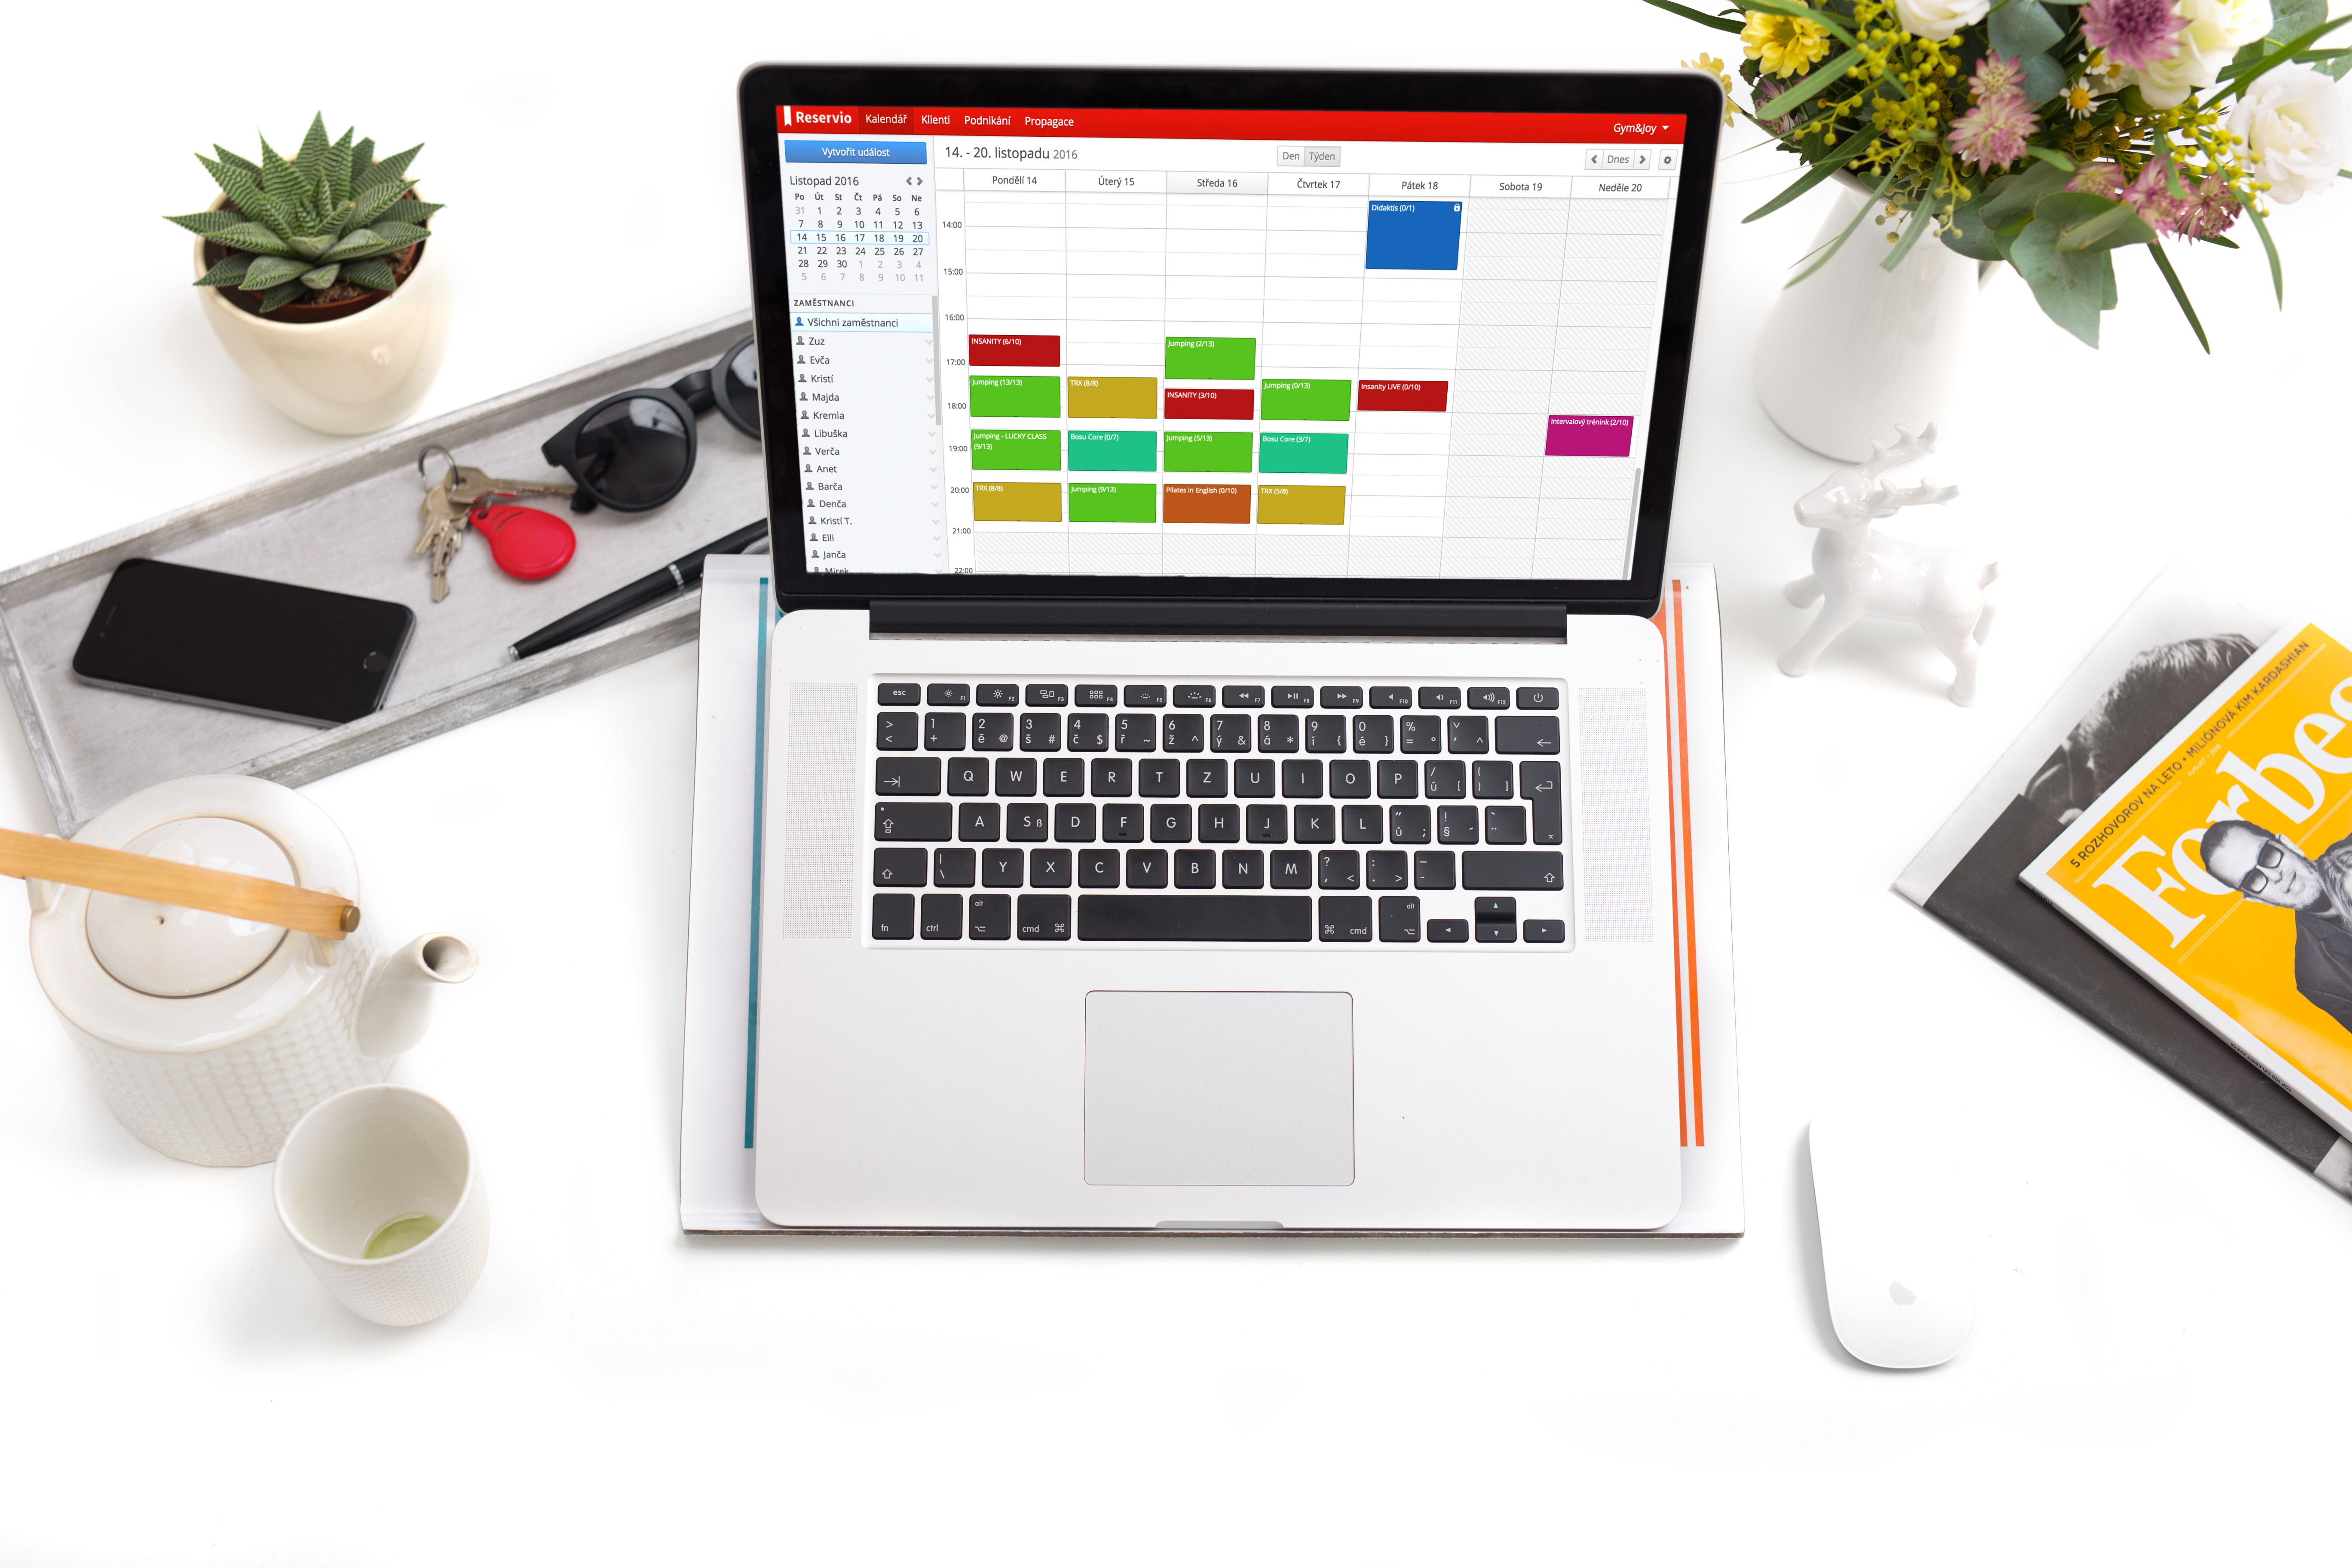 Keep track of appointments in an elegant drag-and-drop calendar